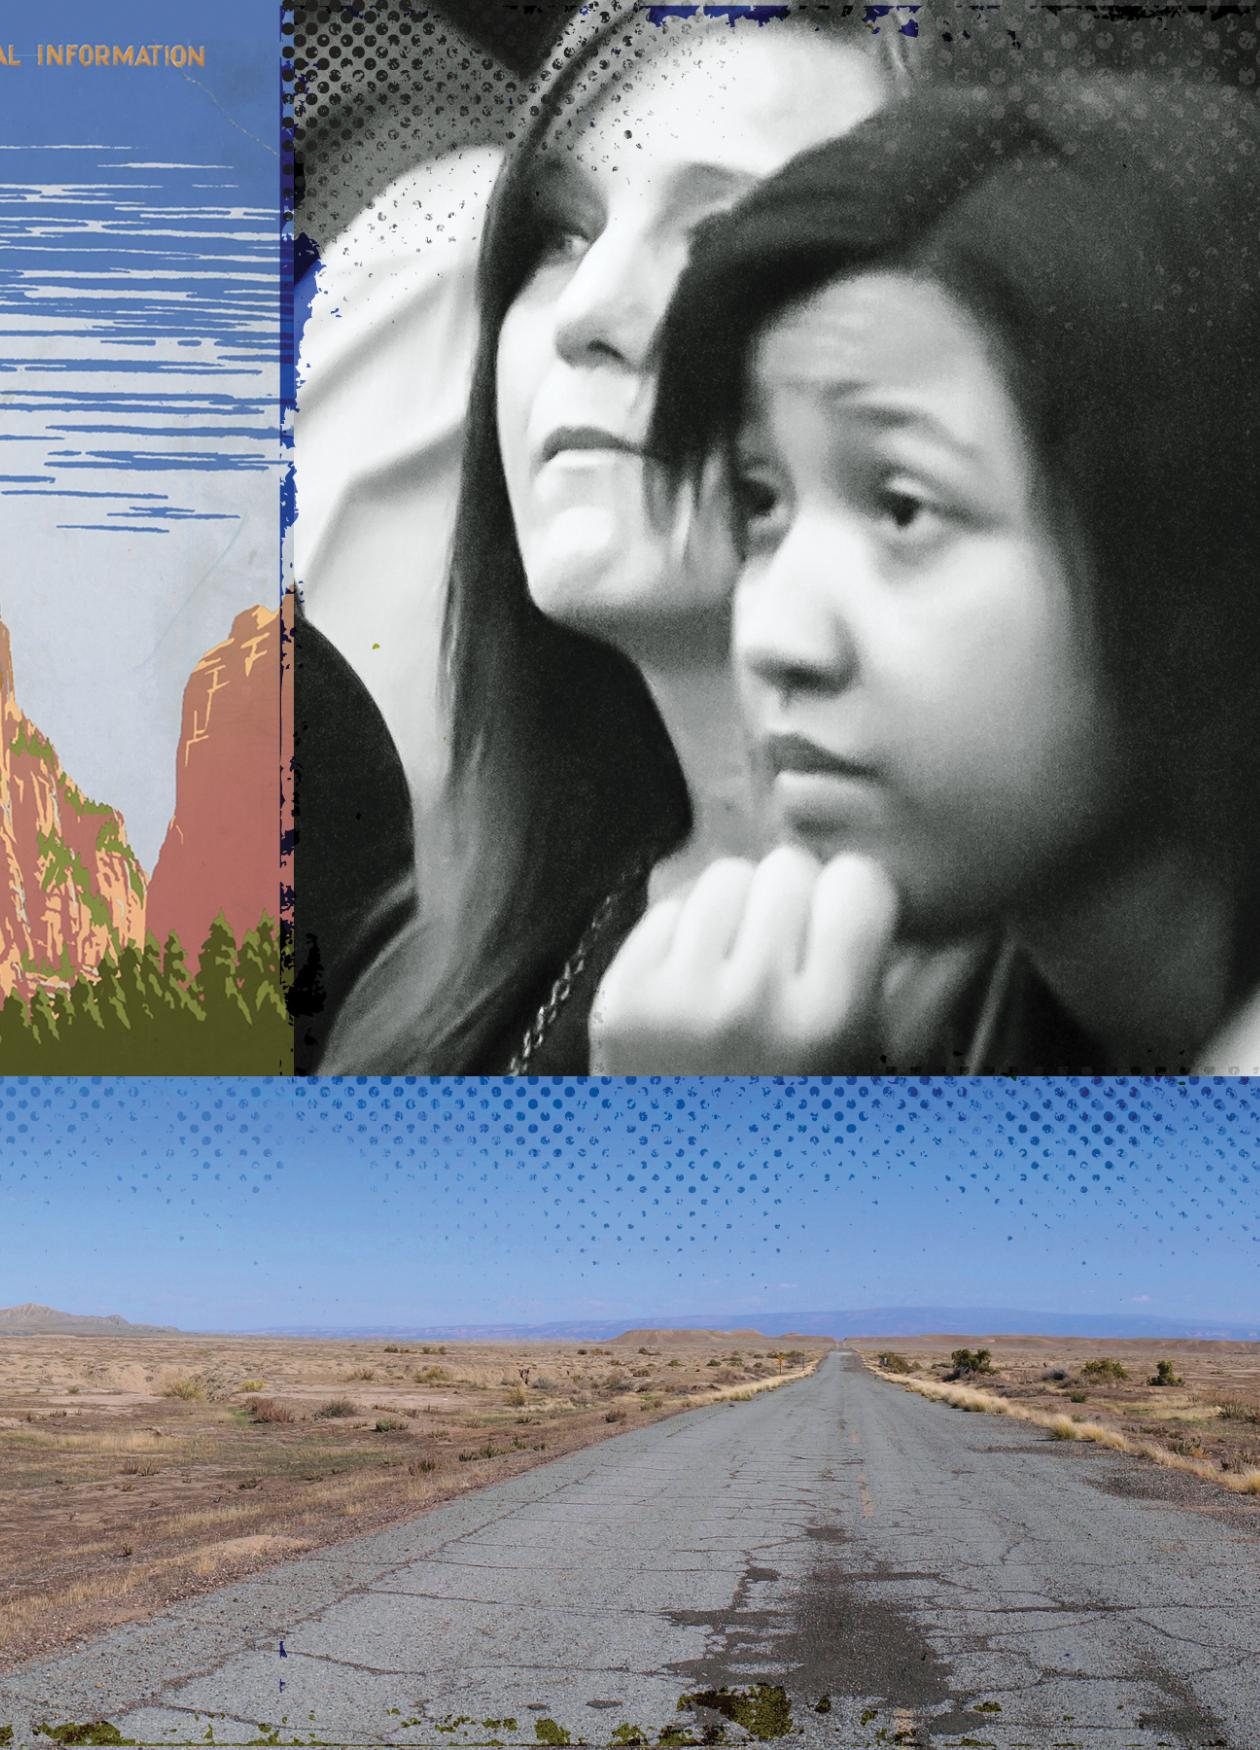 collage of photos showing students, rock formations, an open road, and a cracked stone path